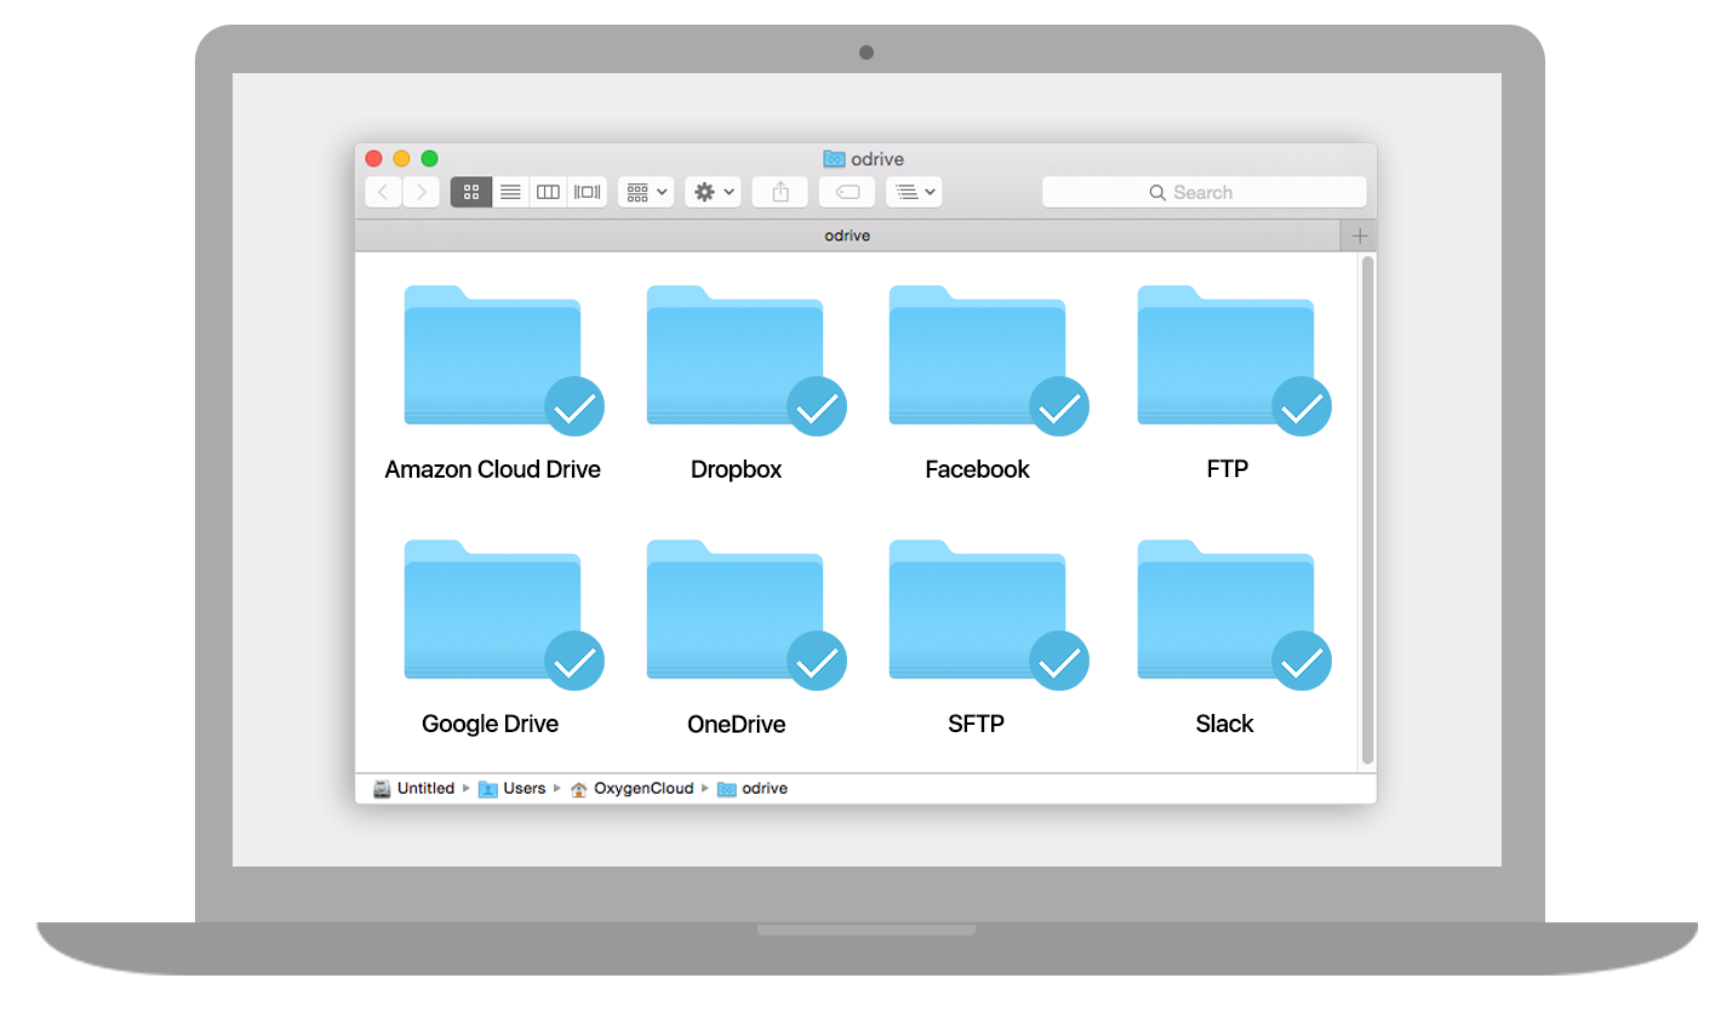 Unified access to all storage so you can sync, share, encrypt, and back up your files on any machine.